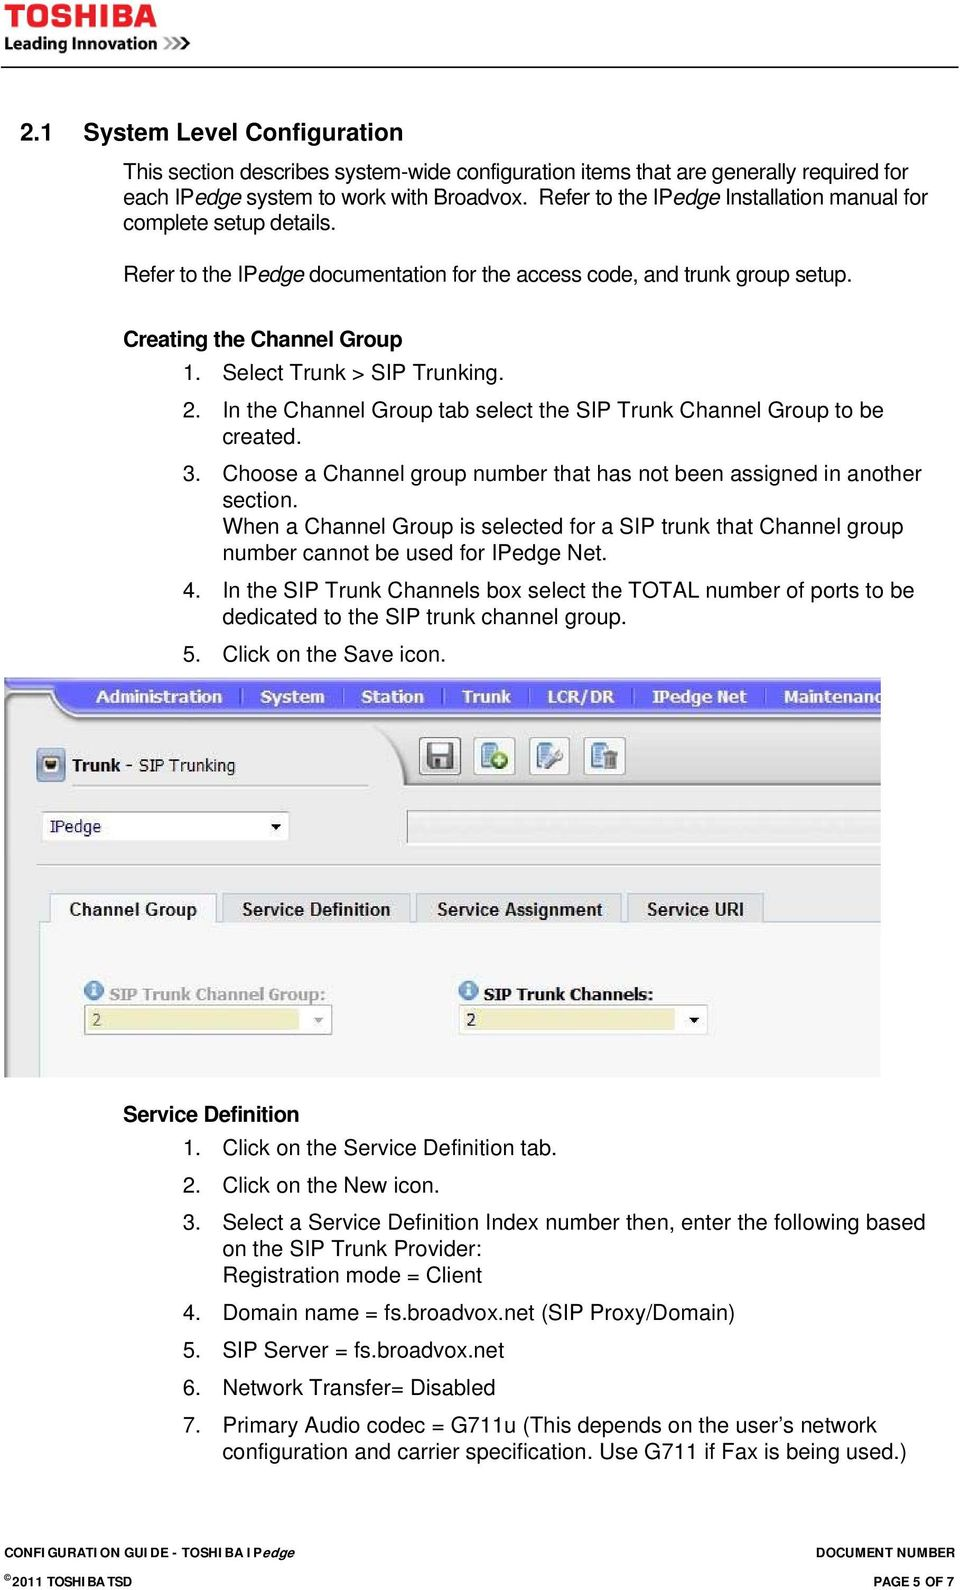 Select Trunk > SIP Trunking. 2. In the Channel Group tab select the SIP Trunk Channel Group to be created. 3. Choose a Channel group number that has not been assigned in another section.